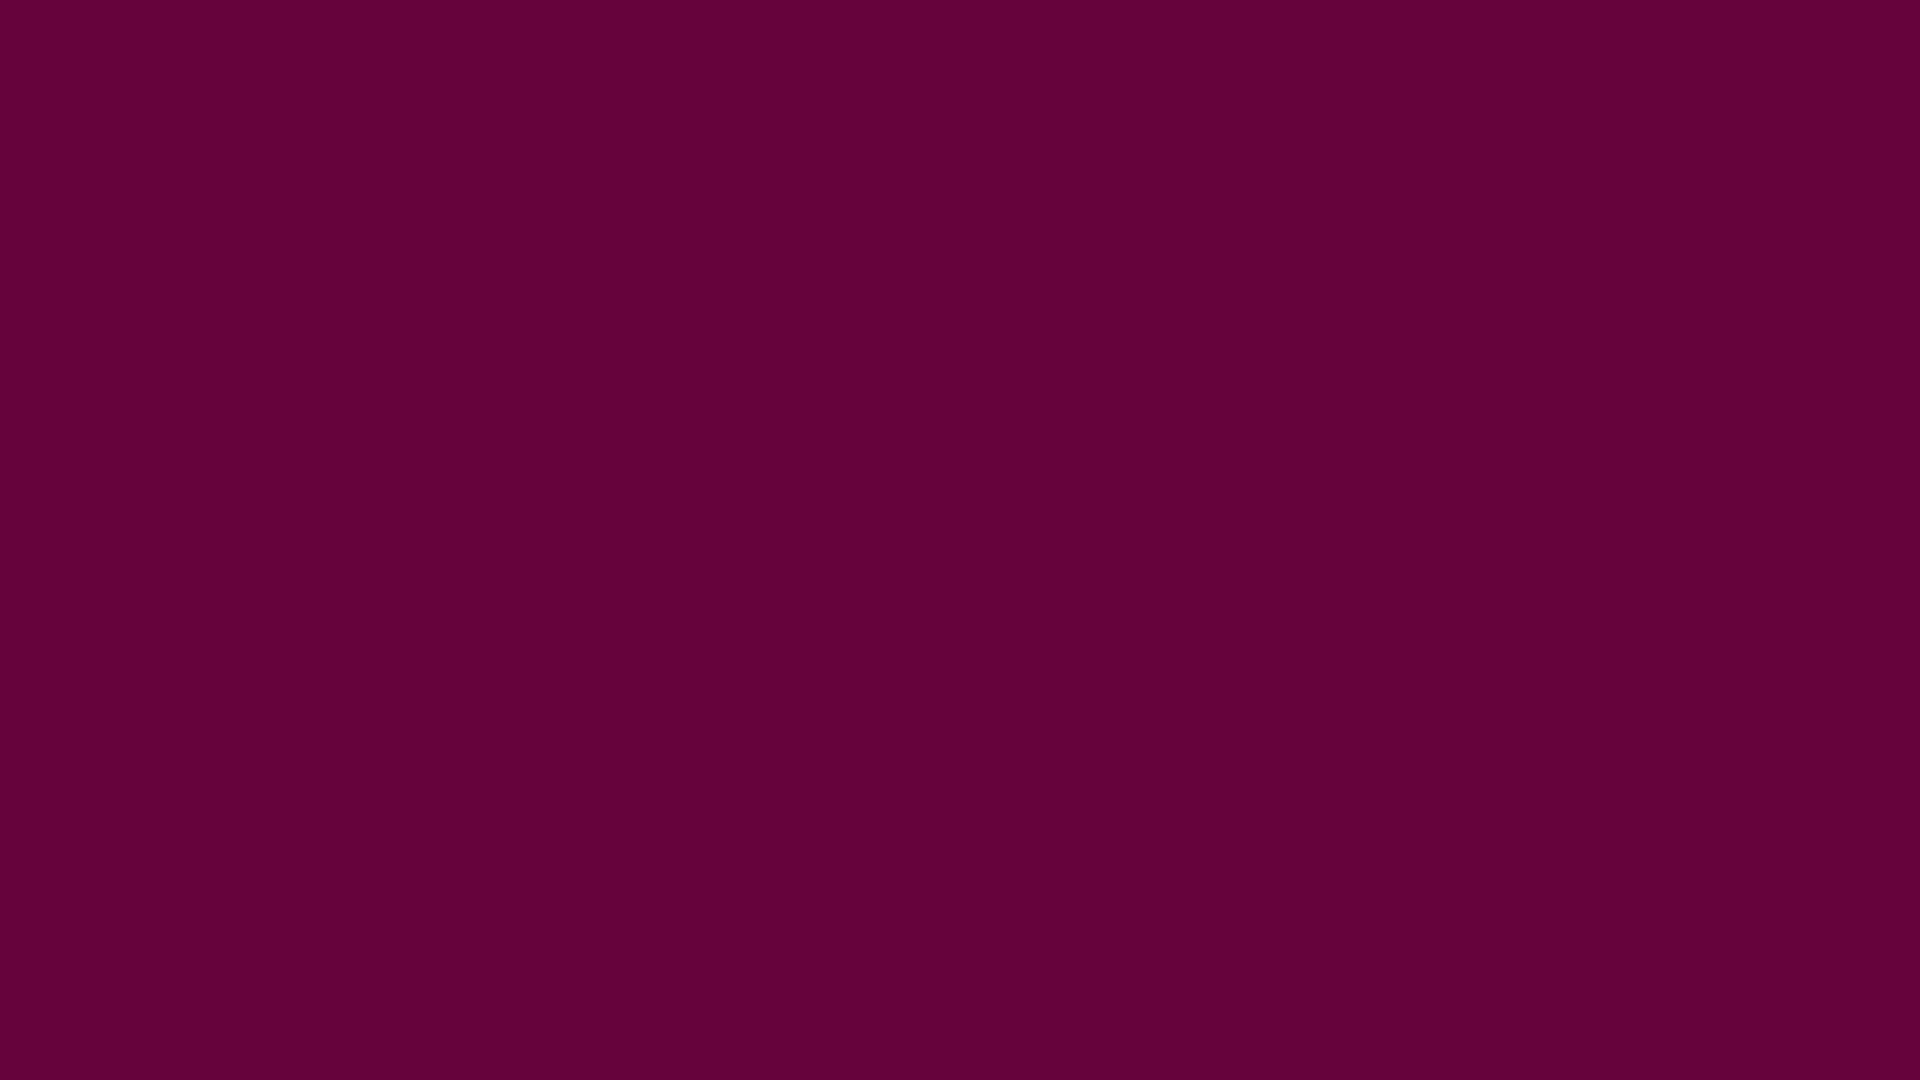 1920x1080 Imperial Purple Solid Color Background